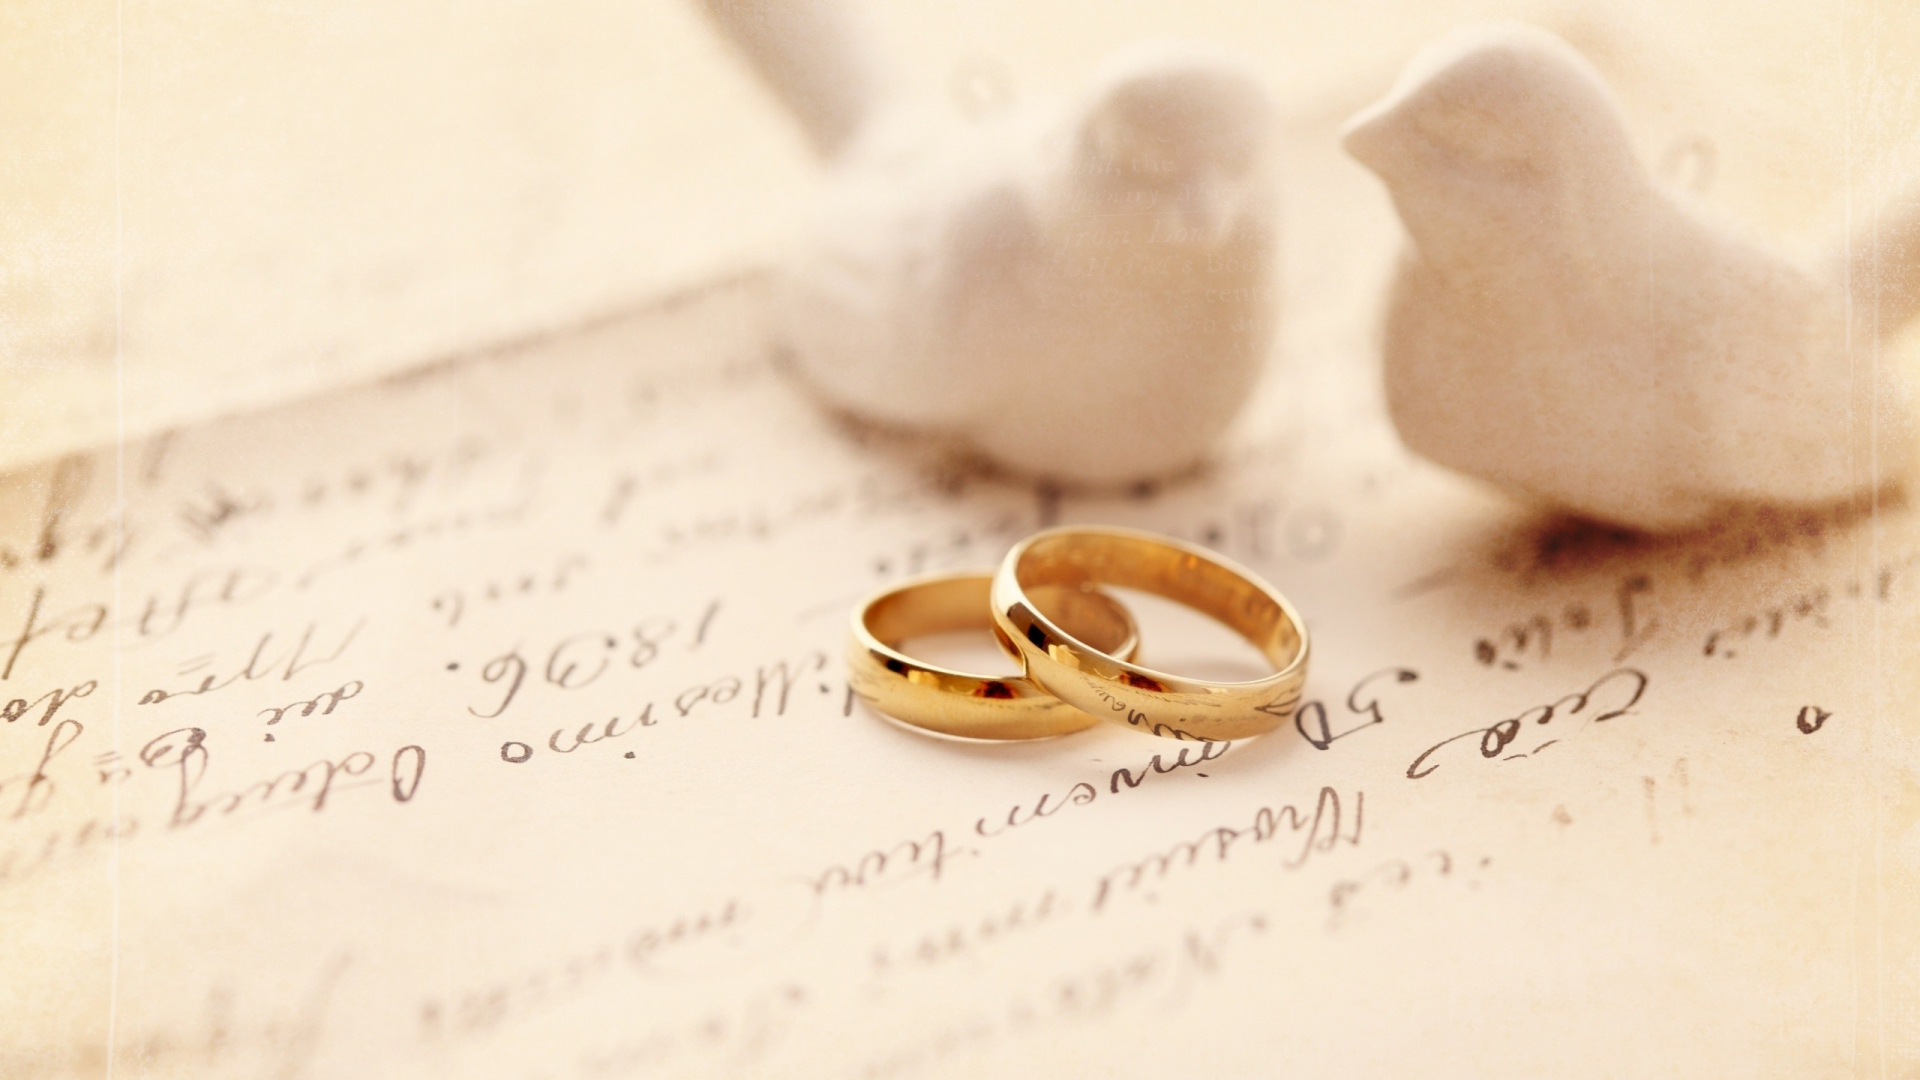 Free Download Gold Ring Love Wedding Wallpaper Pc 7929 Wallpaper High Resolution 2560x1600 For Your Desktop Mobile Tablet Explore 42 Wedding Ring Wallpaper Wedding Background Wallpaper Free Wedding Desktop